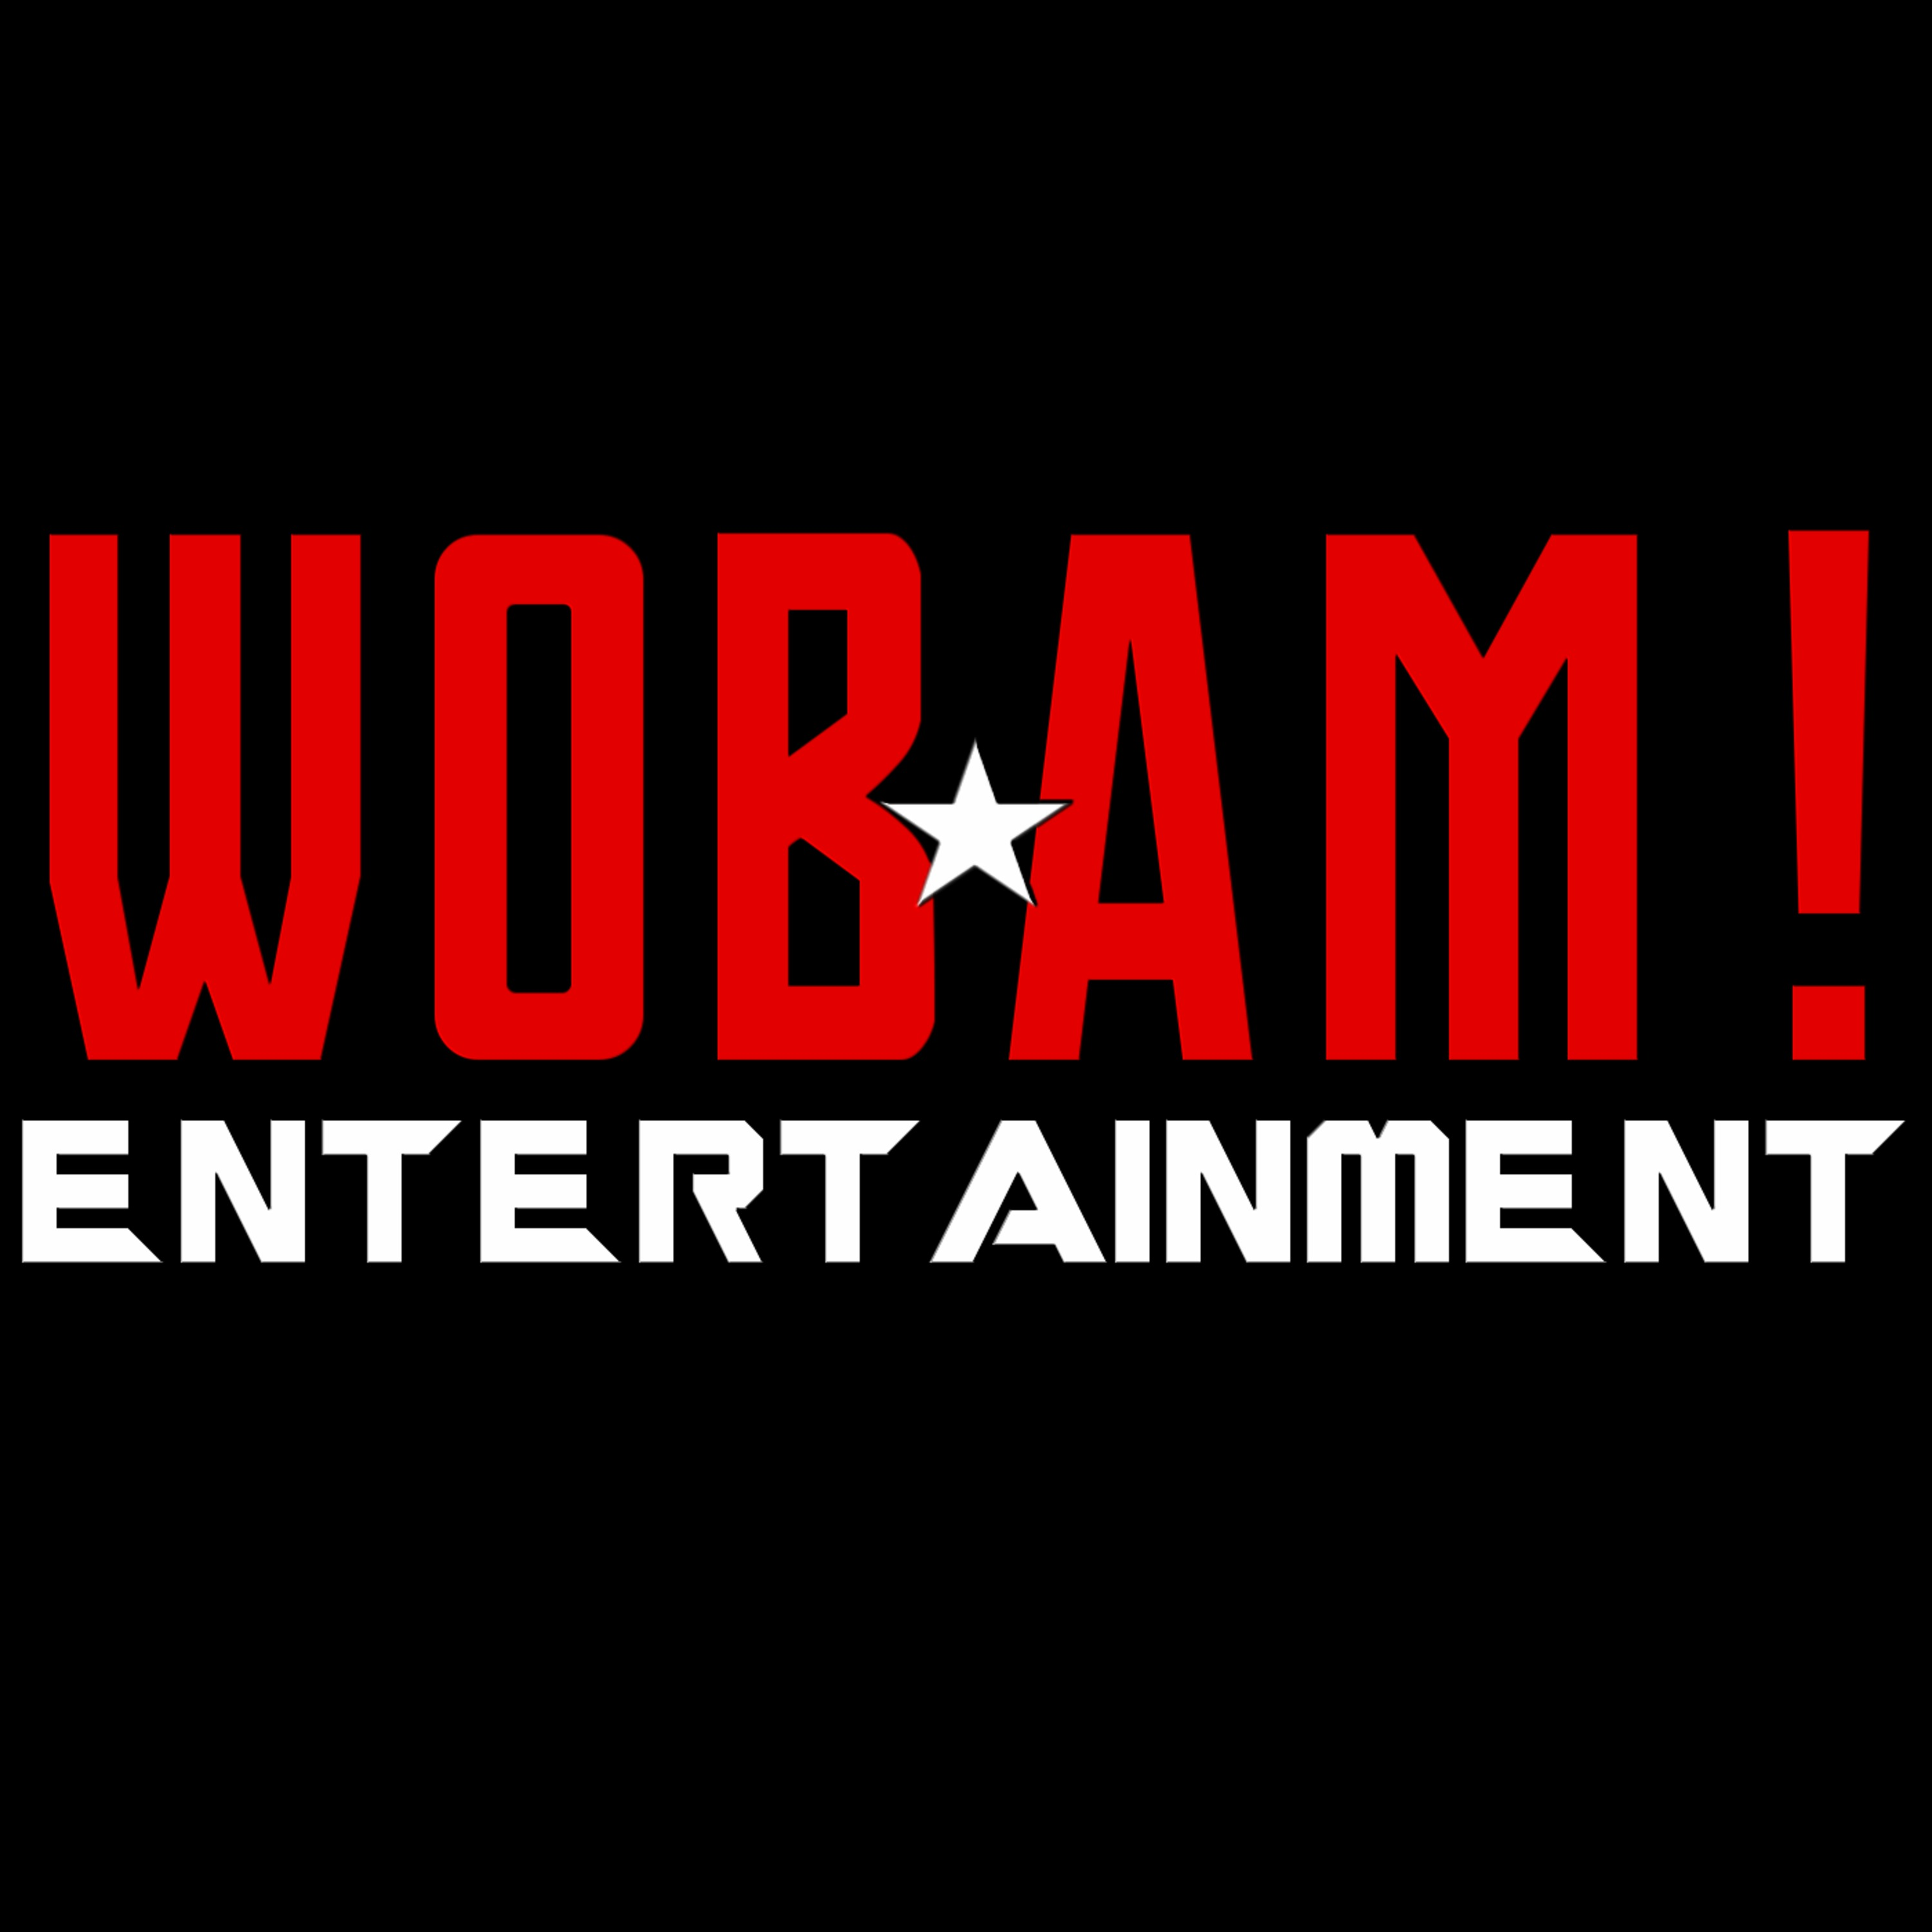 WOBAM Entertainment Podcast